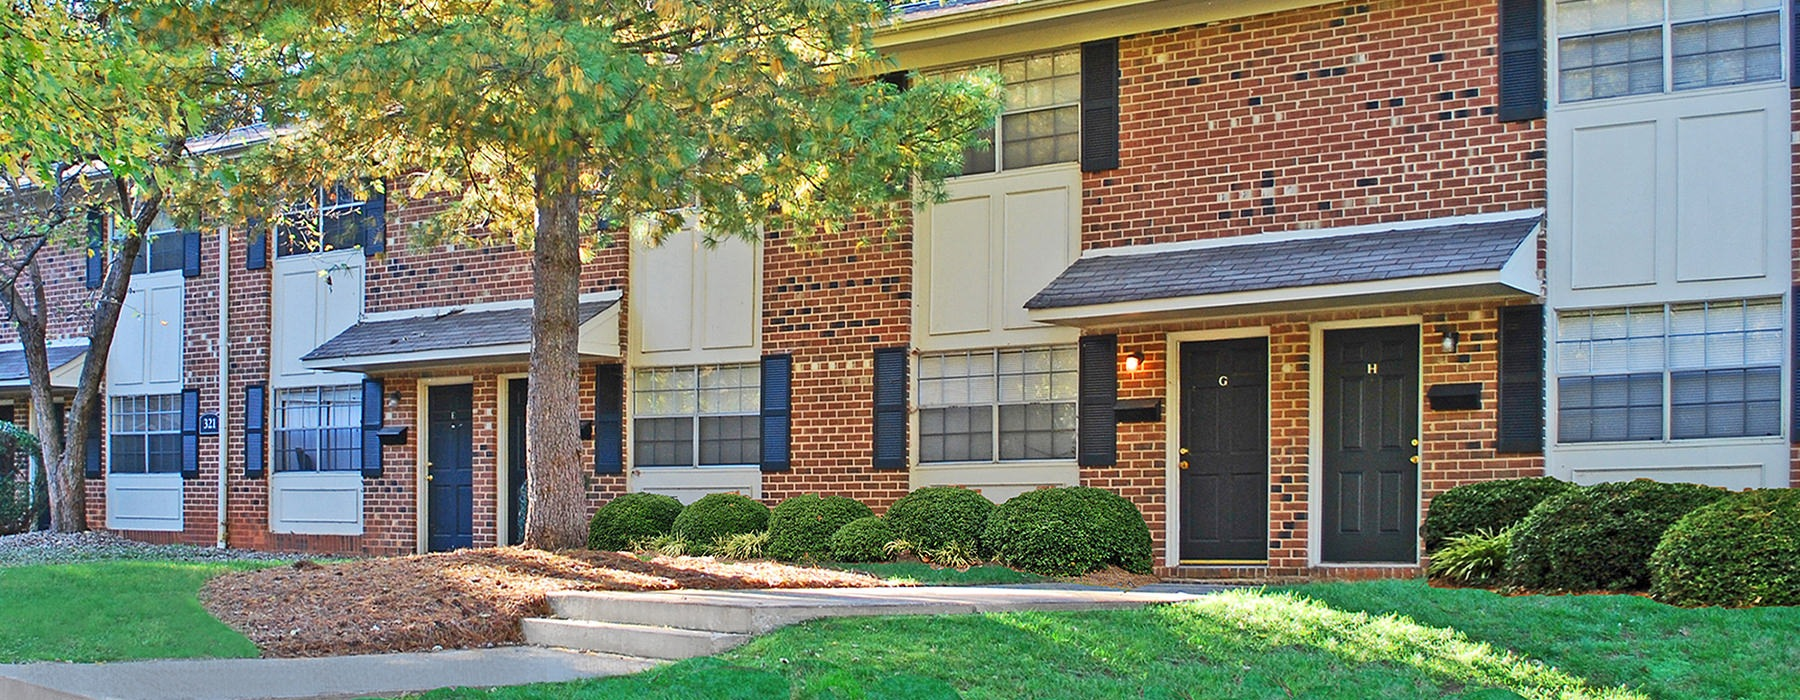 Knollwood Townhouse Apartments is a two-story apartment complex